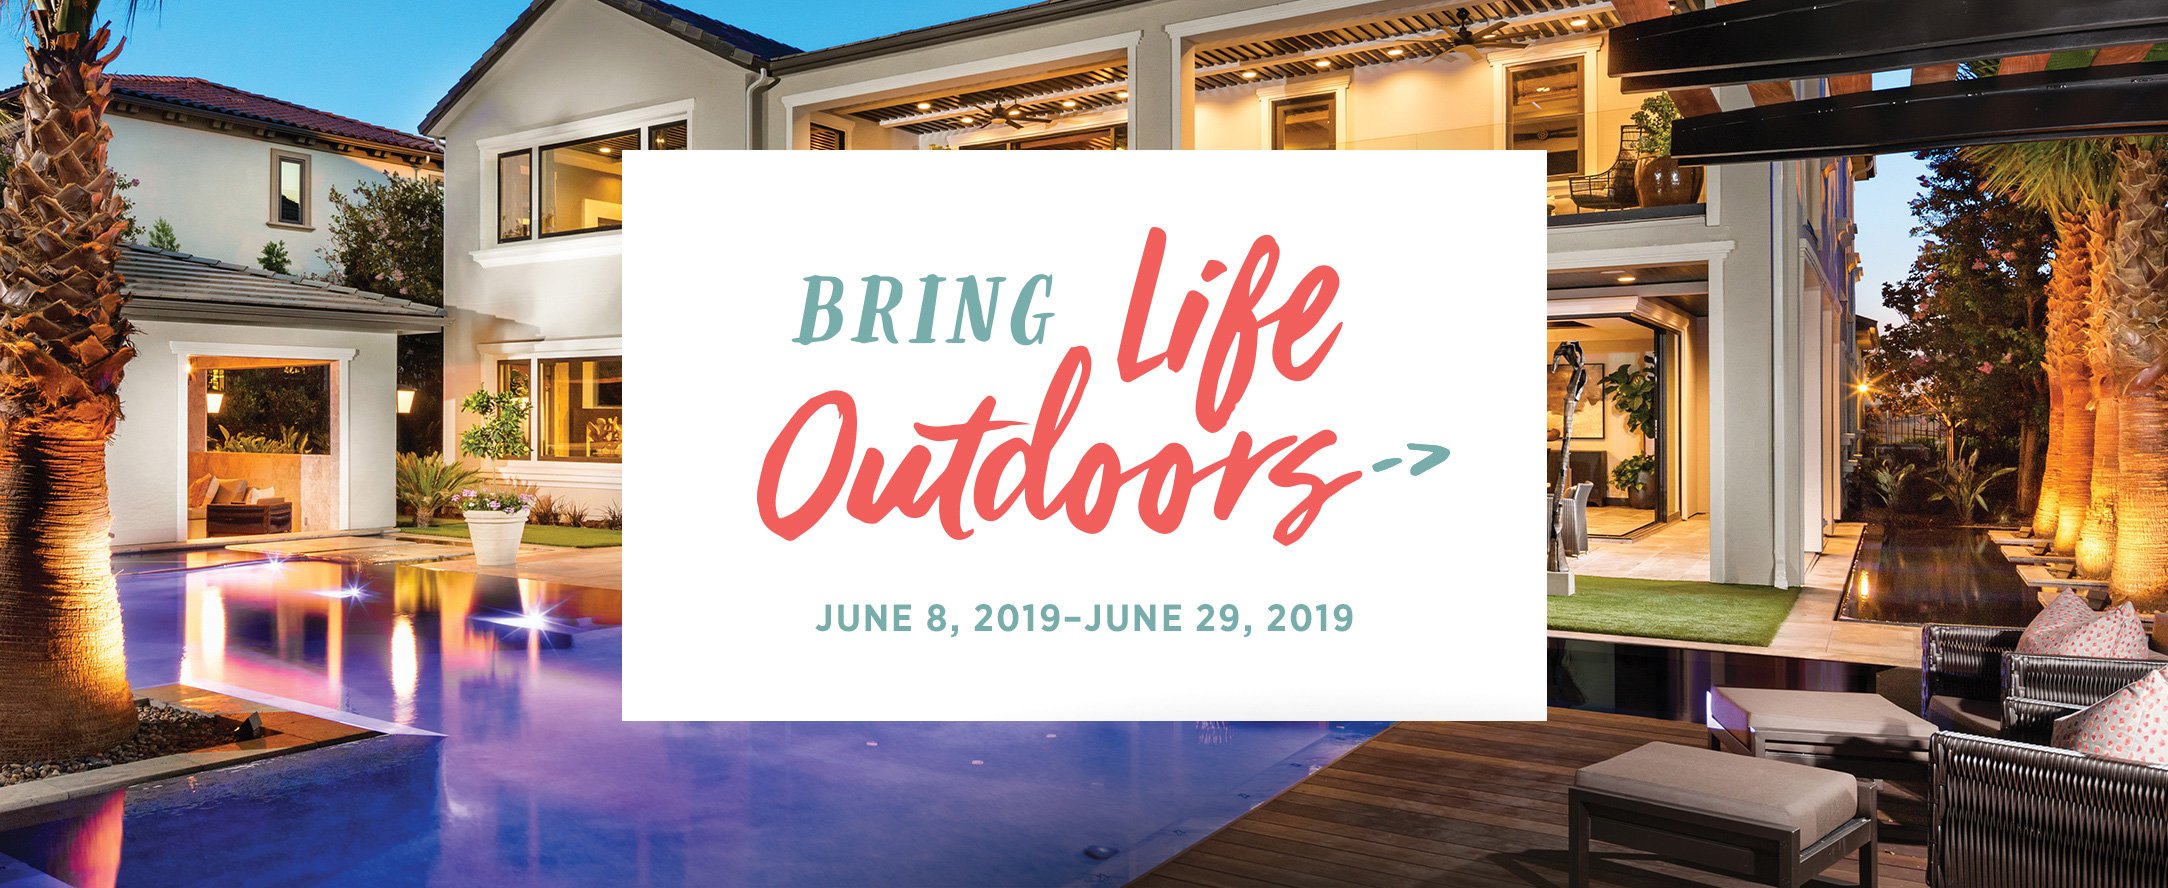 Nothern California Outdoor Oasis Event